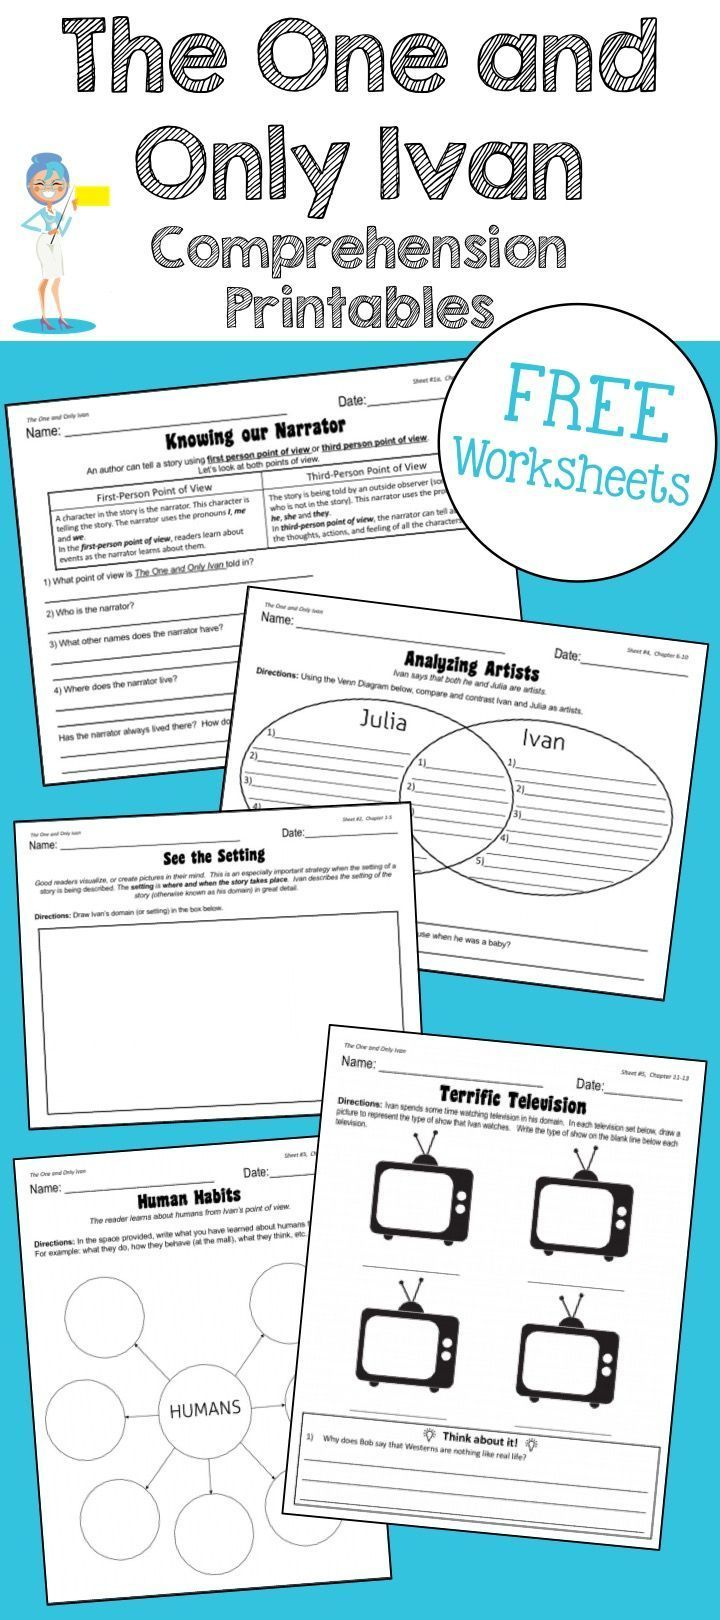 Workbooks willy the wimp worksheets : 83 best Language arts and reading! images on Pinterest | Teaching ...